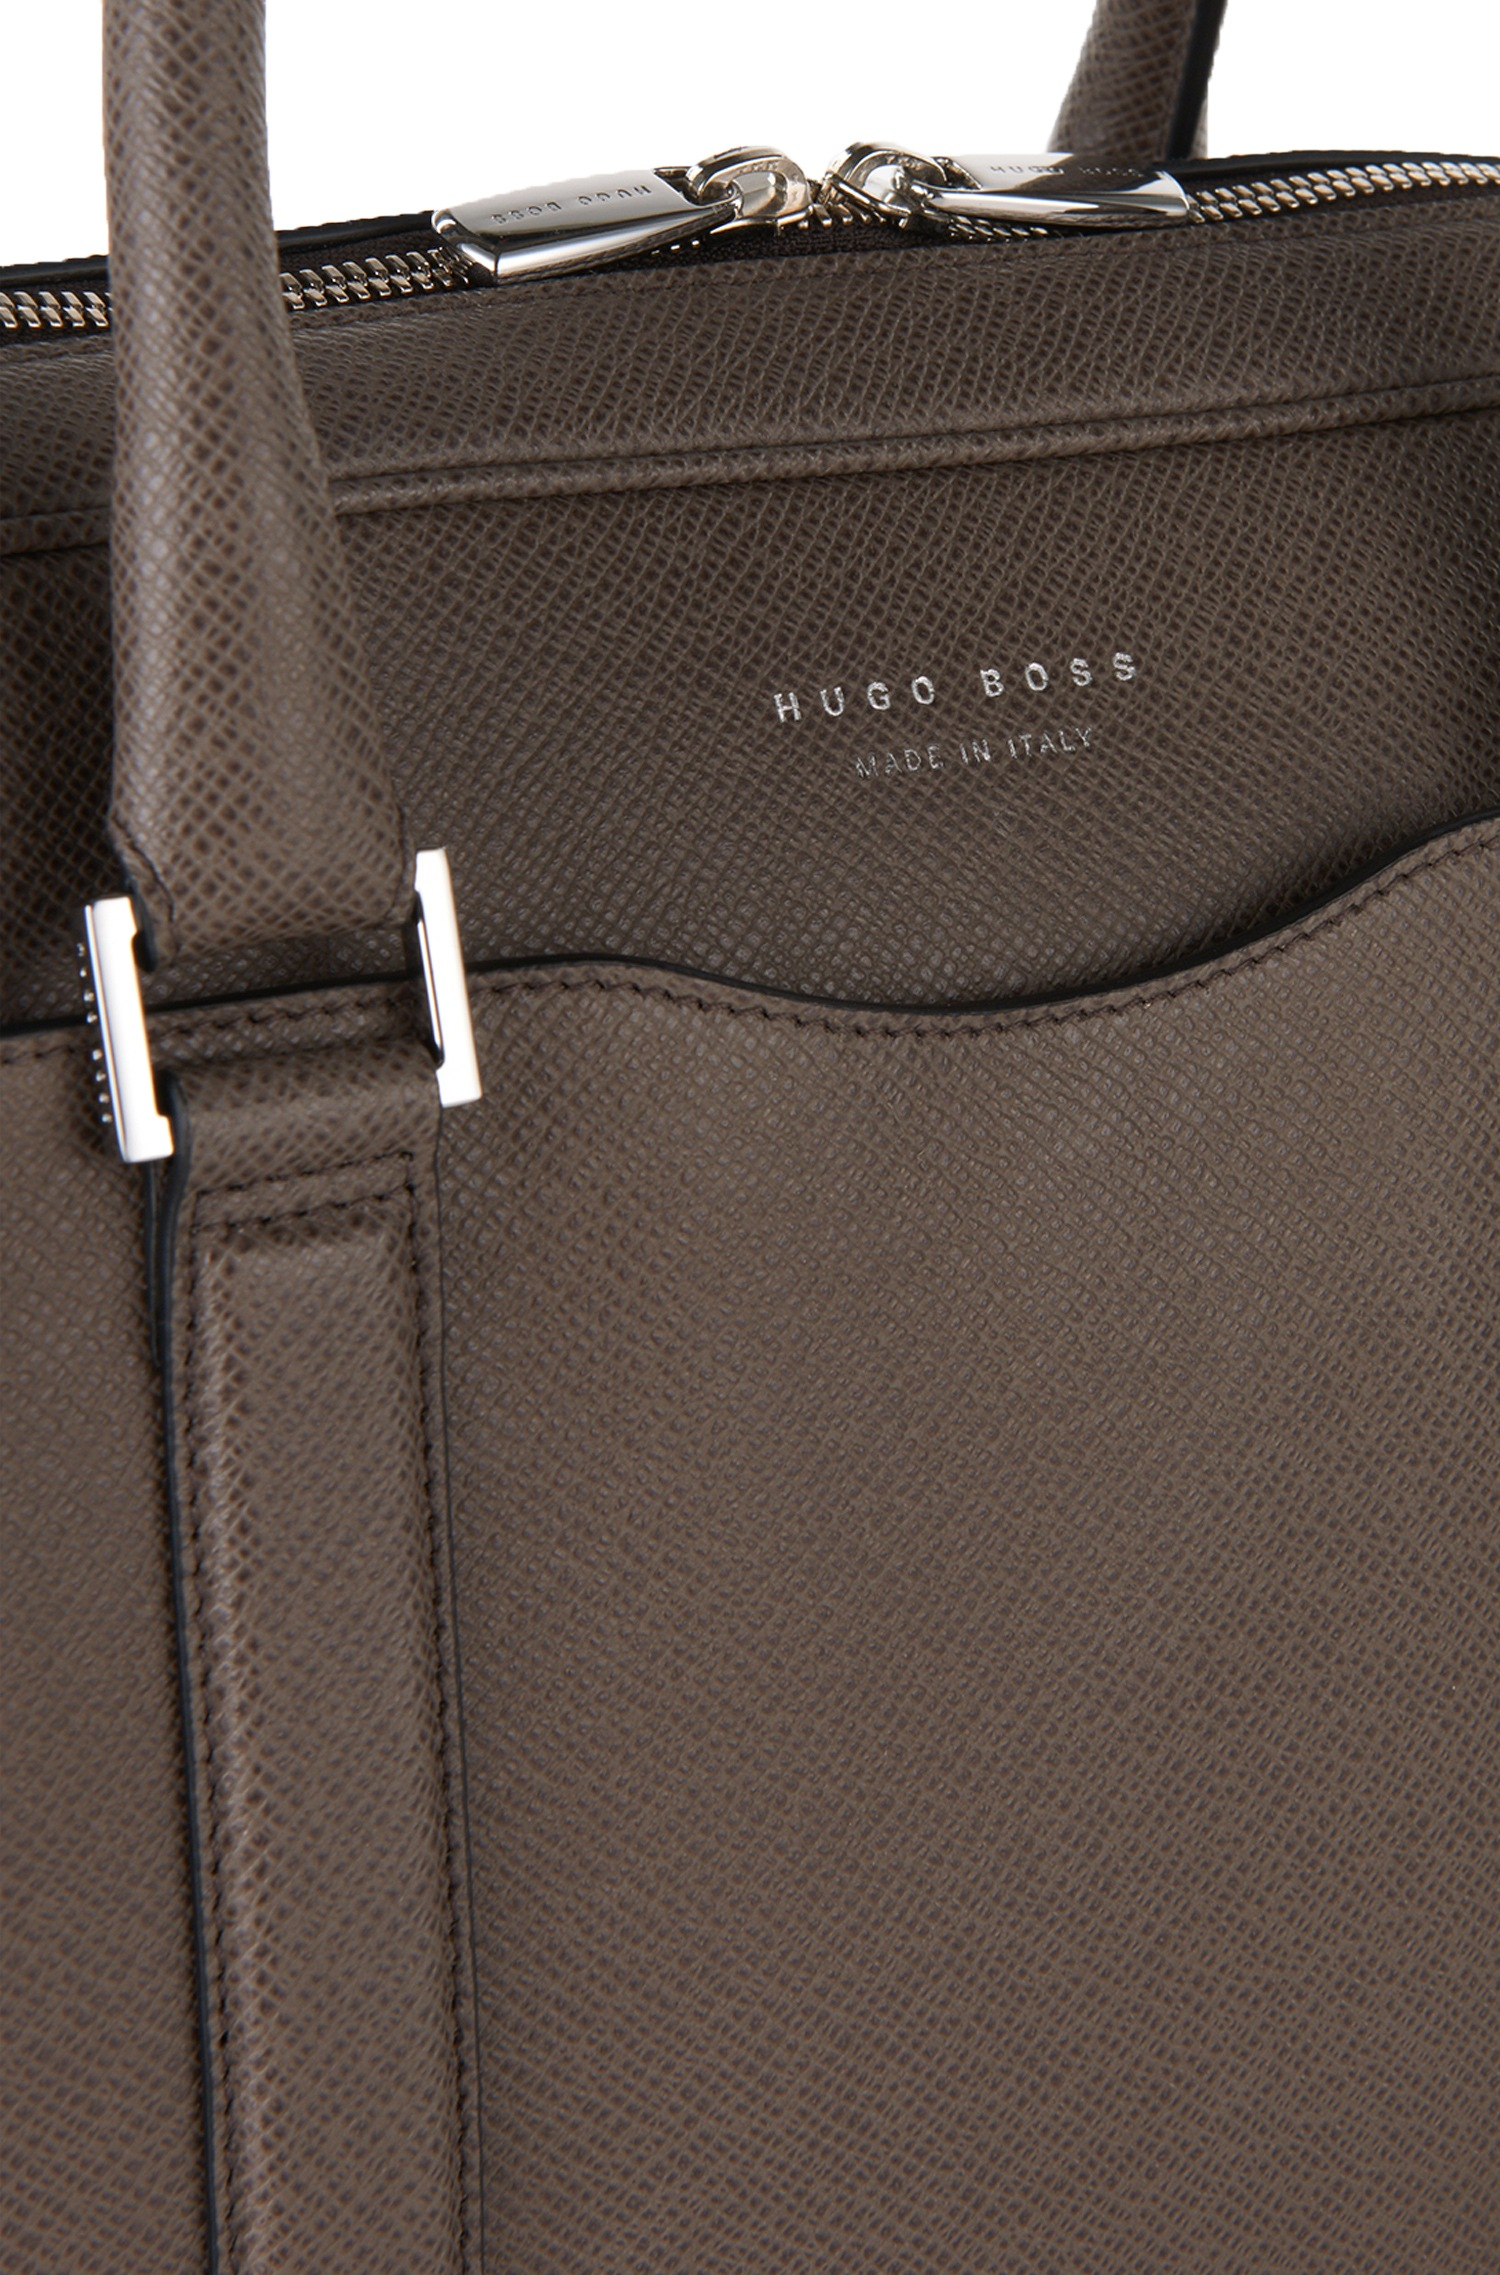 8213a73618 Boss Laptop Bag In Finely-textured Leather   signature s Doc  in ...